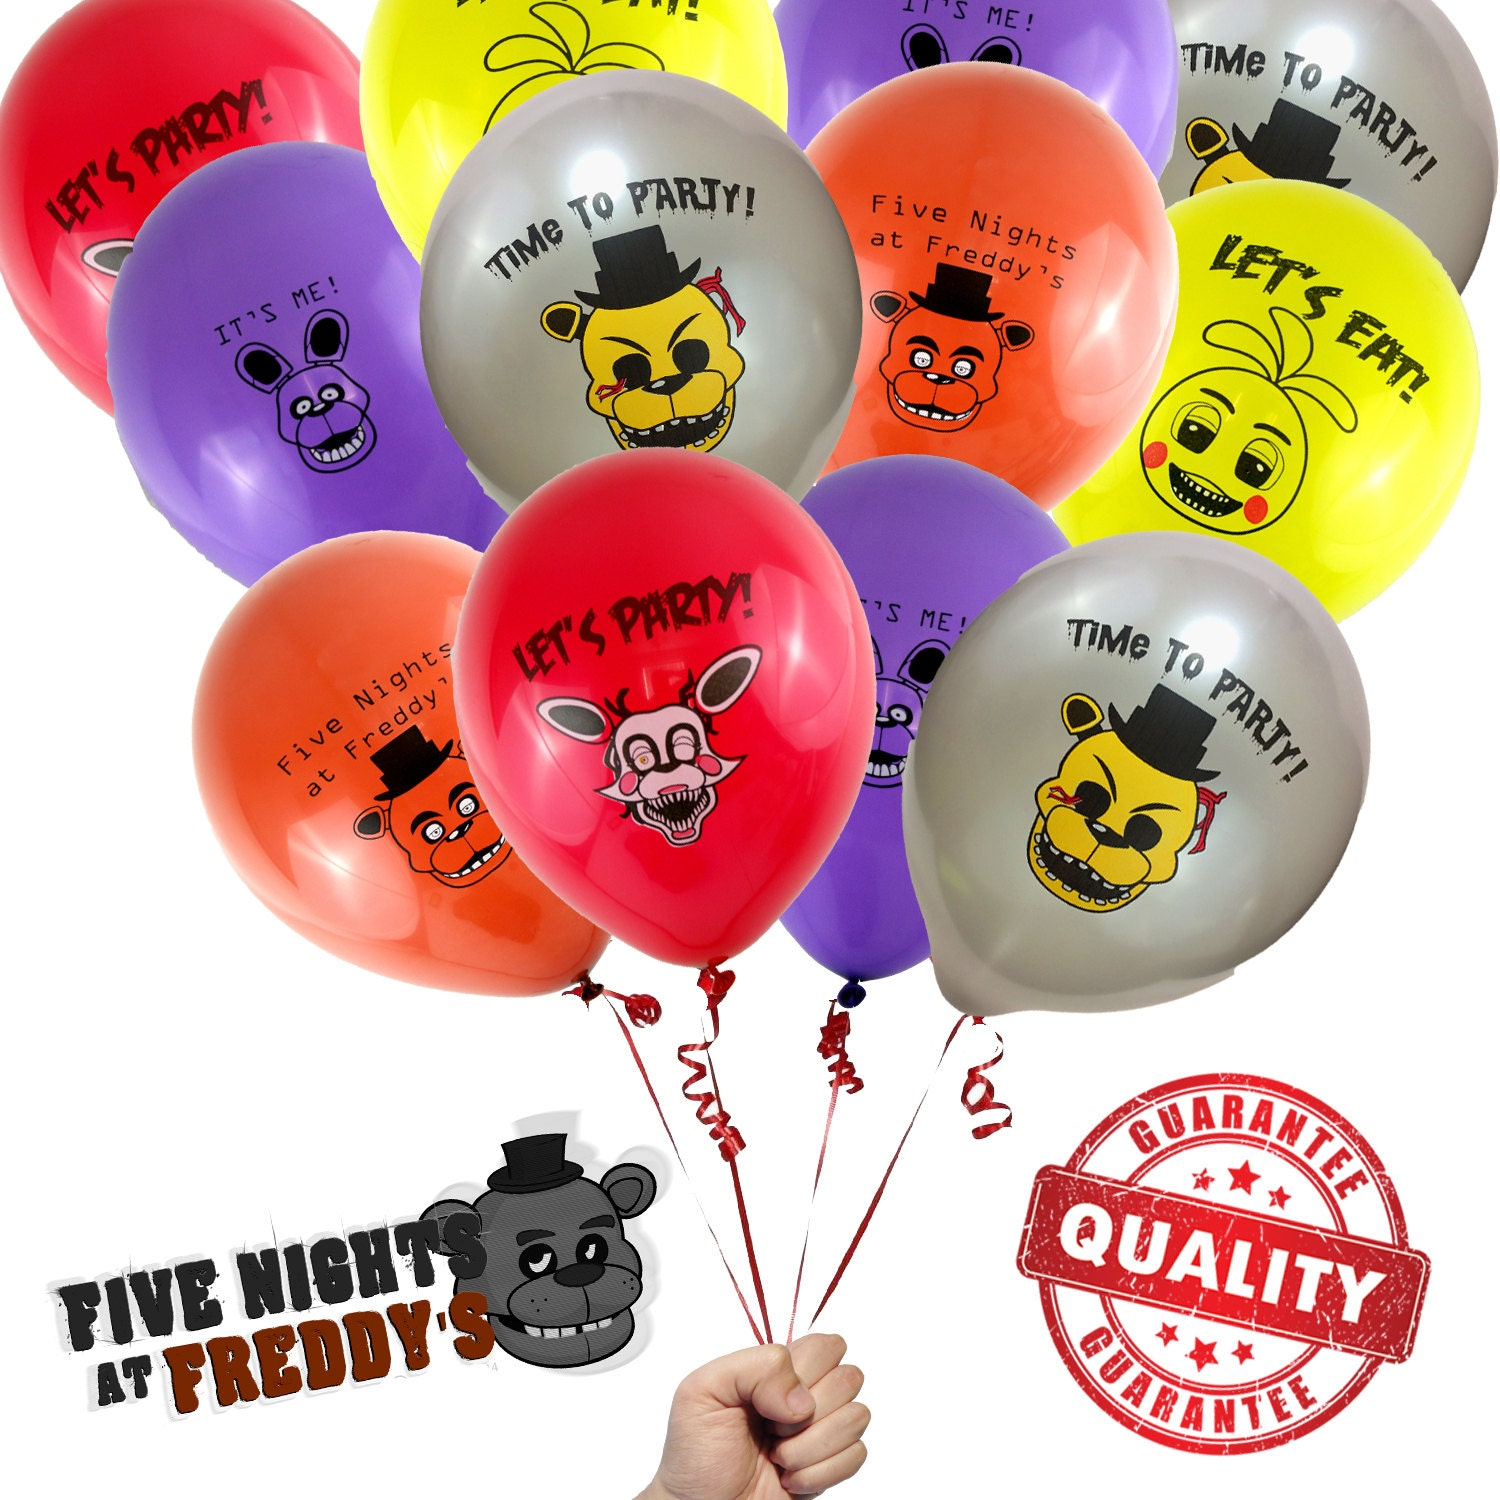 20 Five Nights at Freddys Balloons / FNAF Brithday Party | Etsy